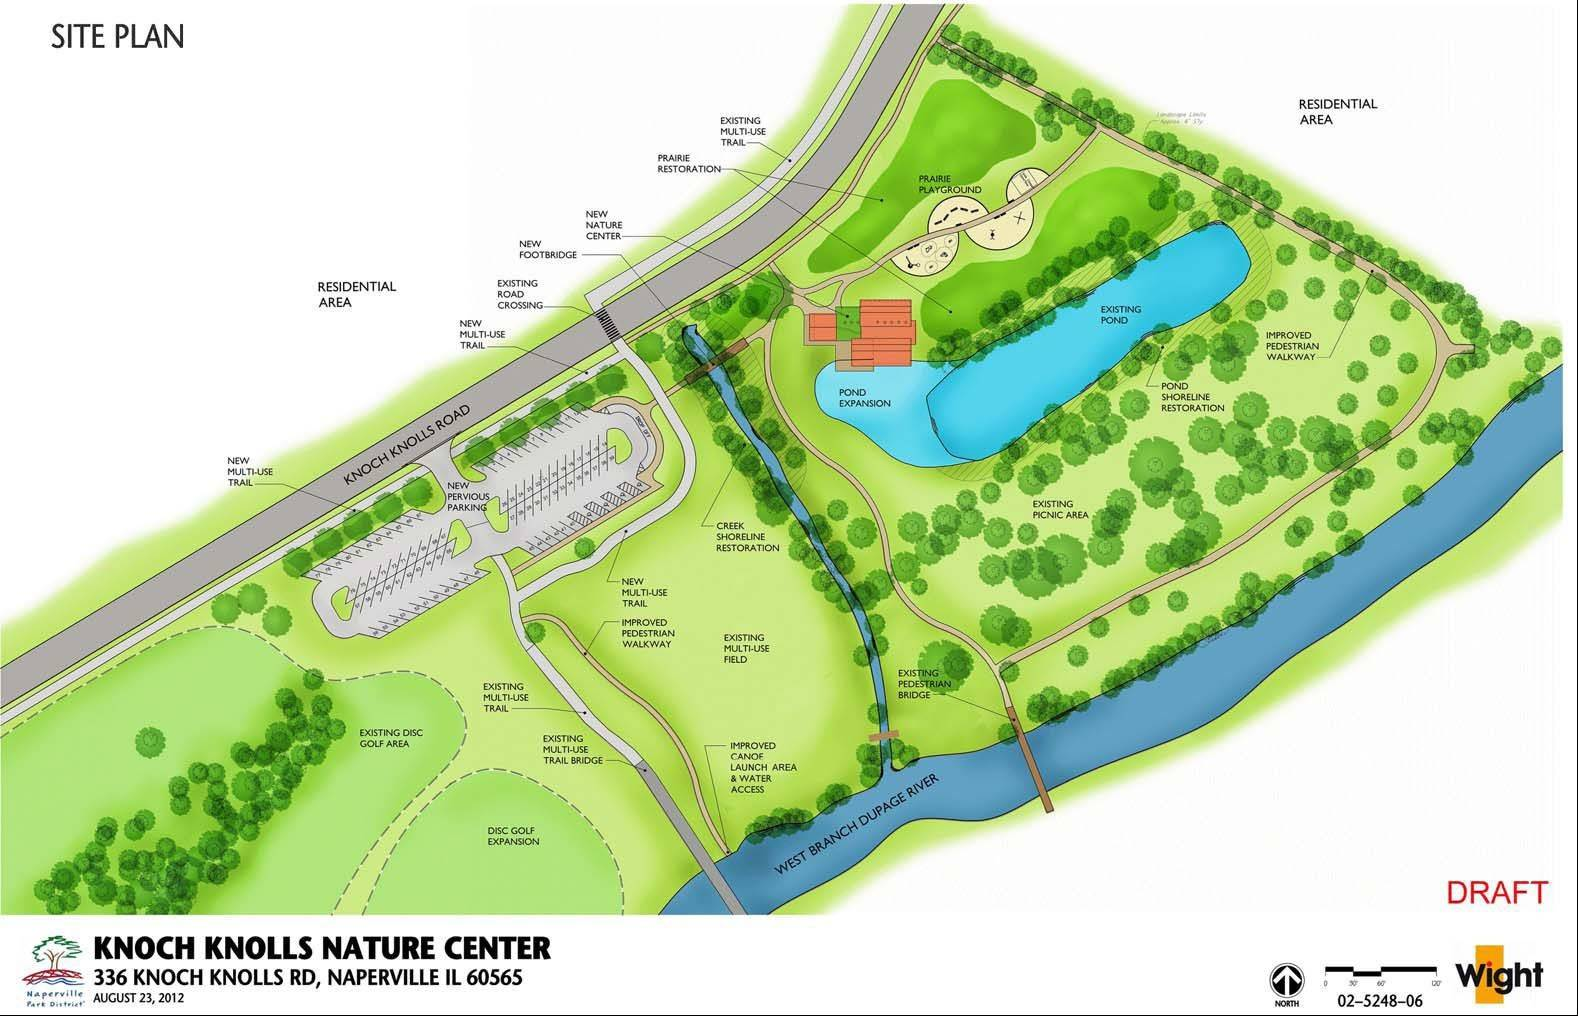 A 5,000-square-foot nature center will be built at the northwest corner of Knoch Knolls park in south Naperville as the park district improves the site with an upgraded canoe launch, trail connections, a new permeable paver parking lot and an expanded disc golf course.